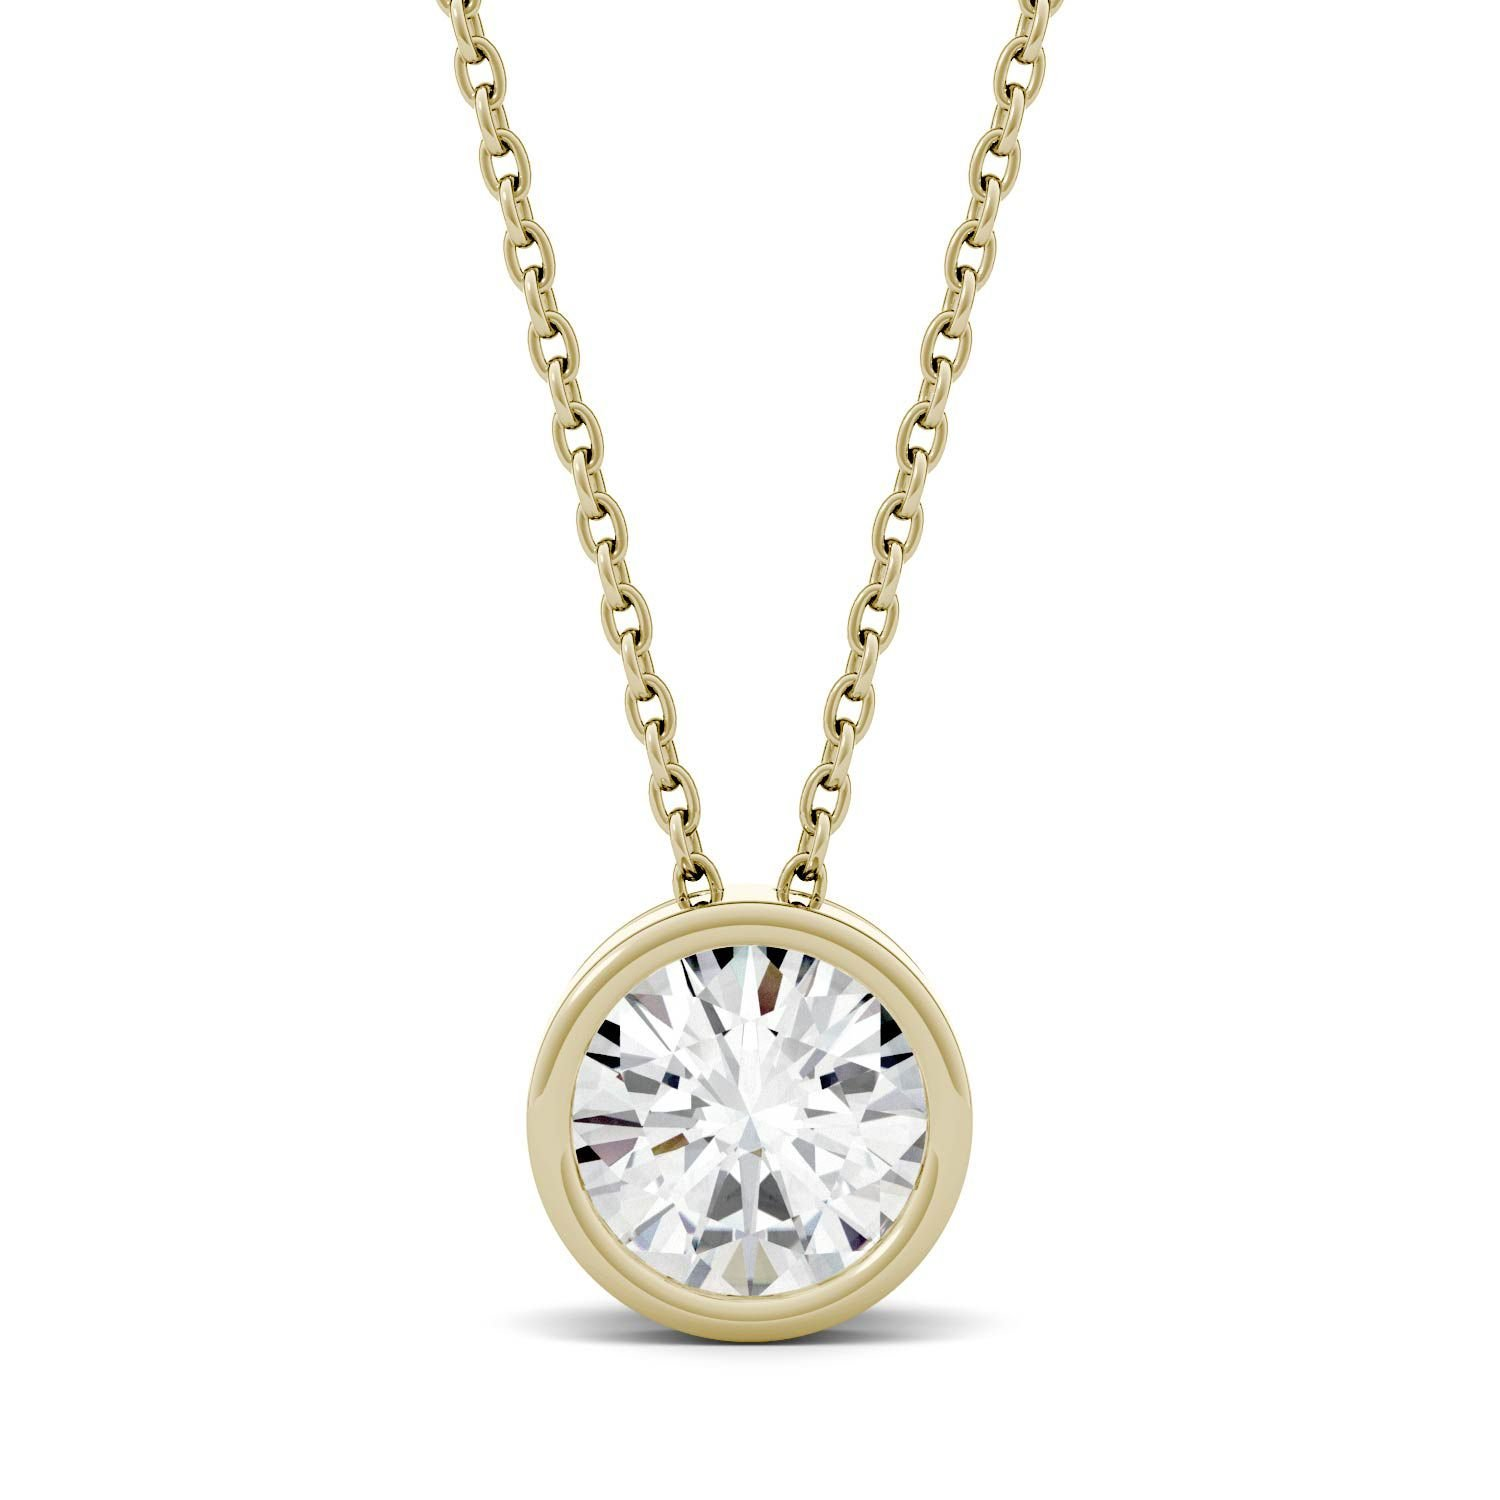 Forever One 14K Yellow Gold Round 8.0mm Moissanite Pendant Necklace, 1.90ct DEW By Charles & Colvard